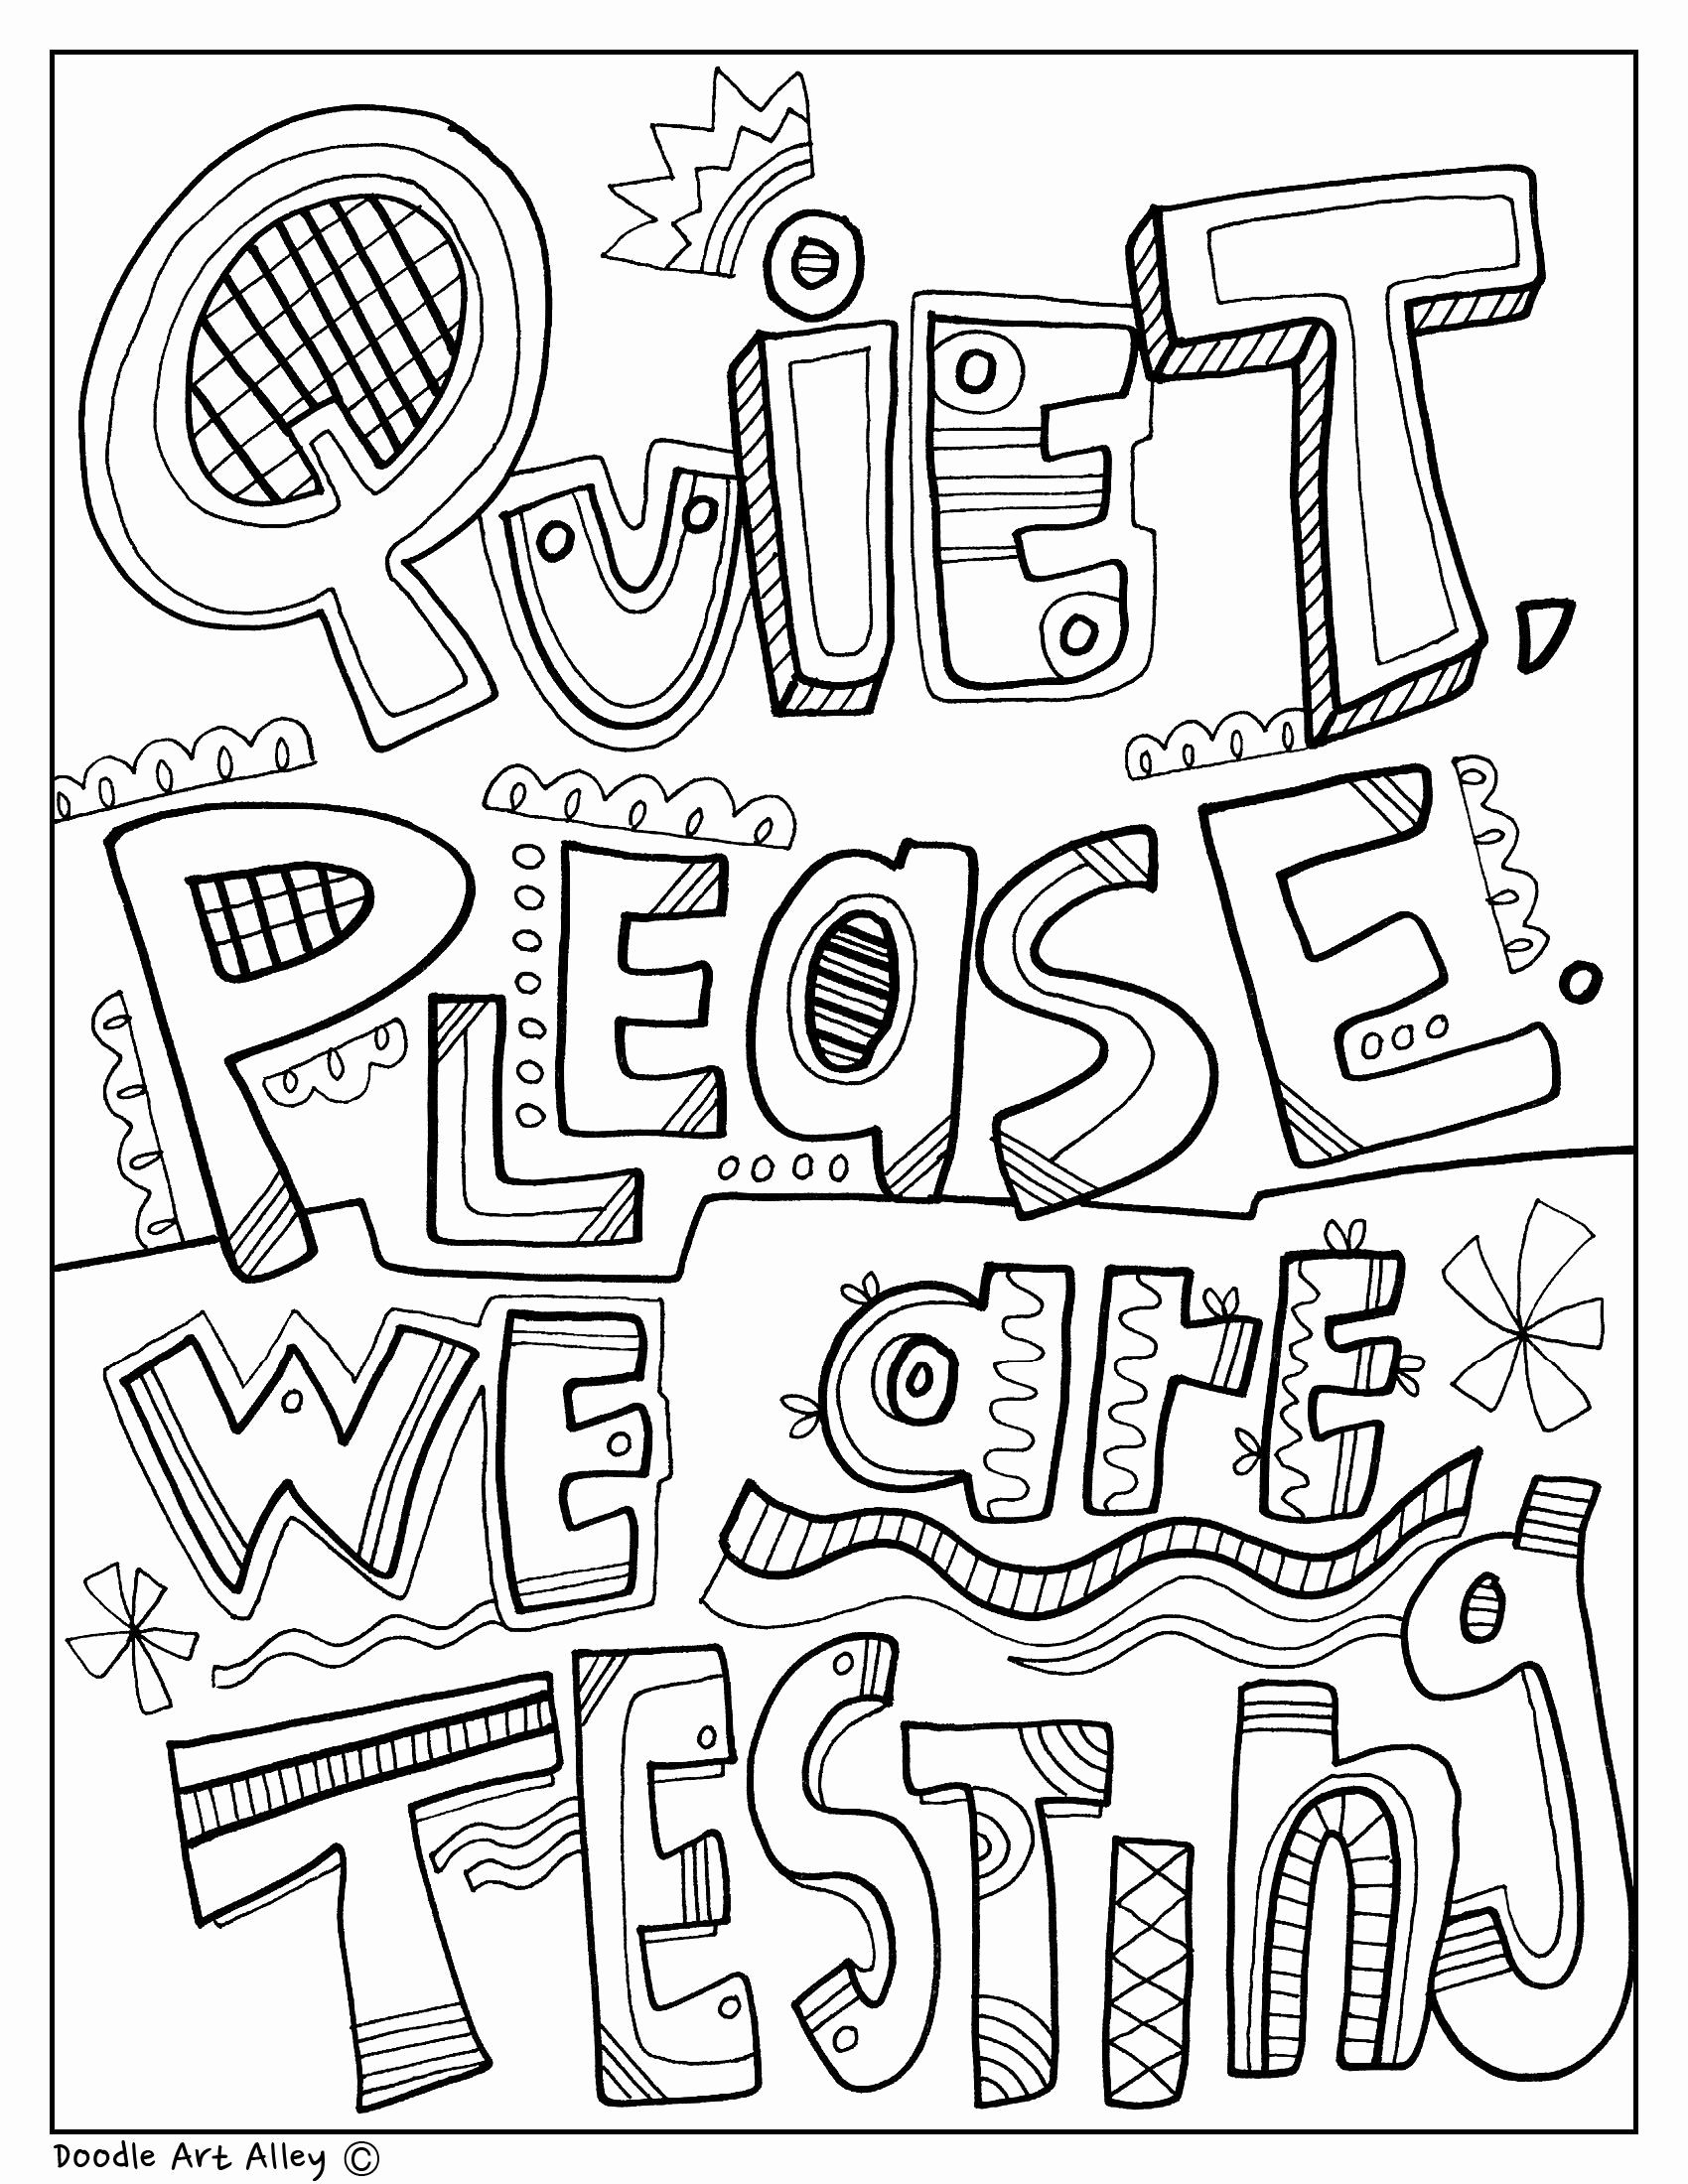 Esl Toys Coloring Worksheet Inspirational Quiet Please We